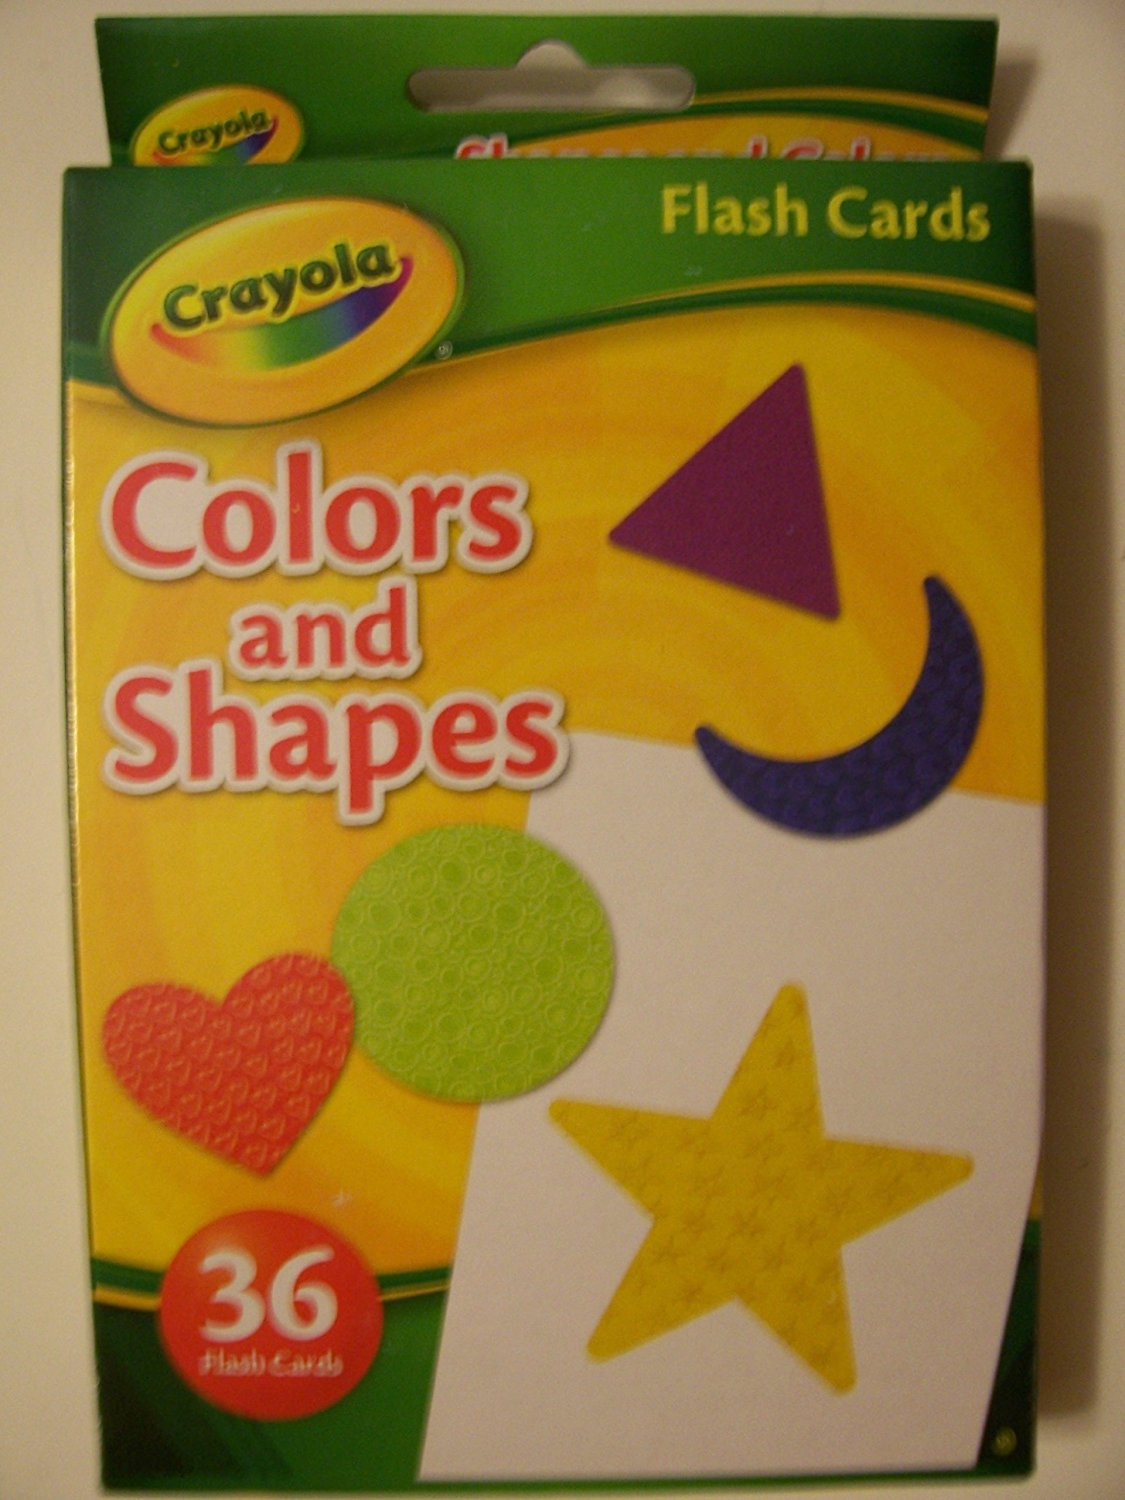 Crayola Educational Flash Cards ~ Colors and Shapes